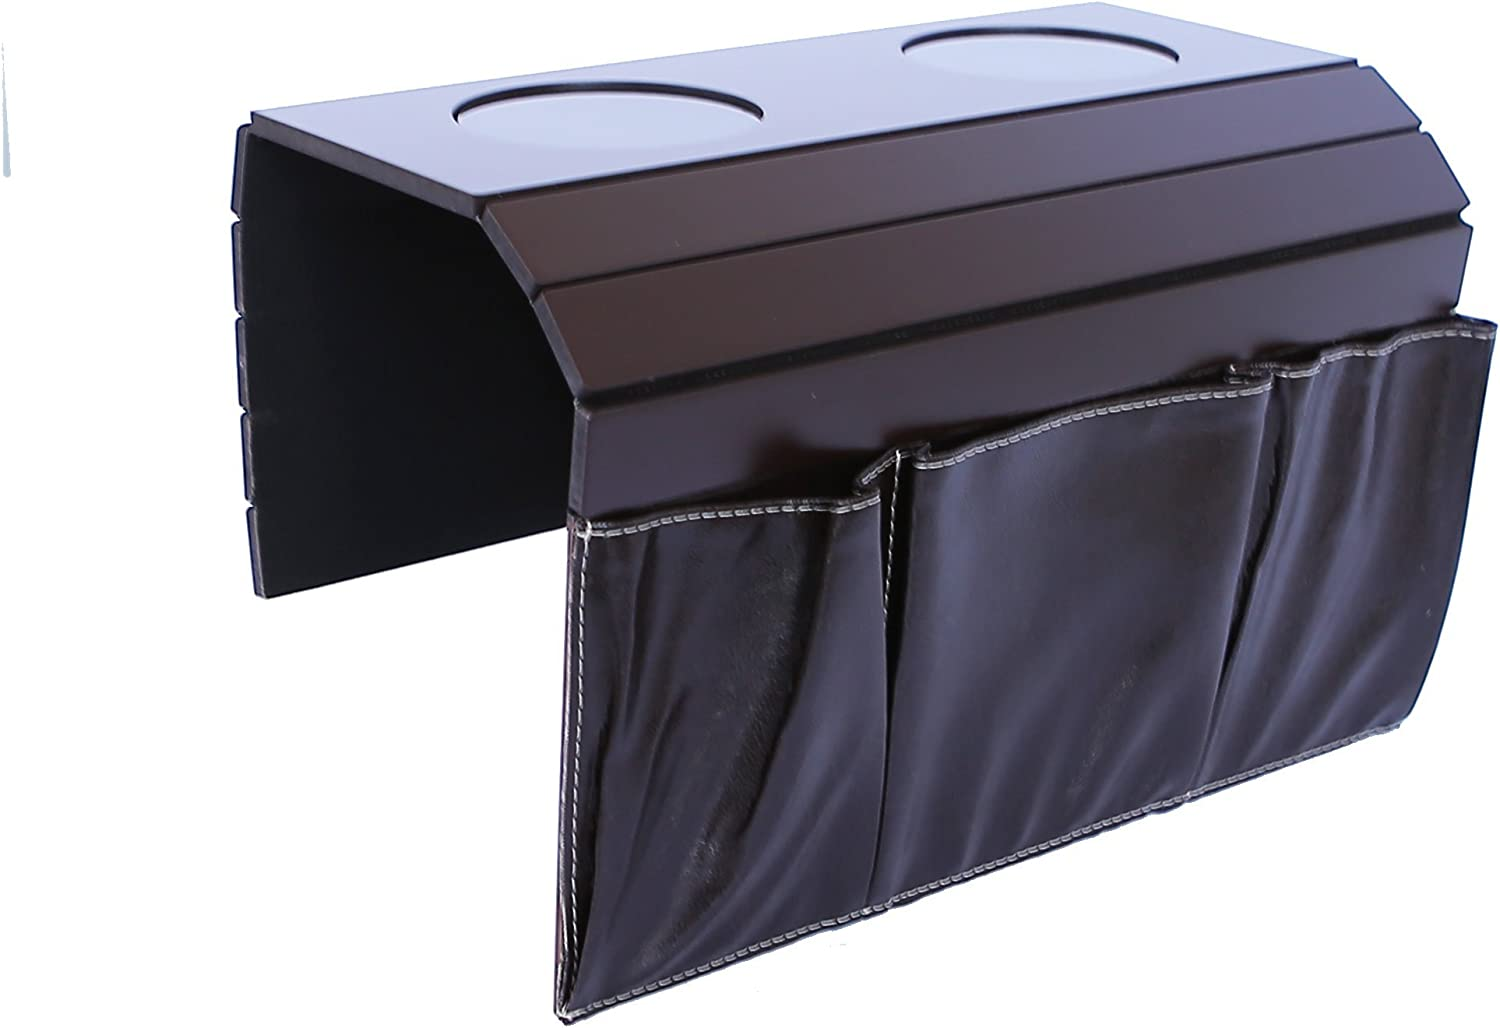 Sofa Couch Arm Tray Table. Remote Control and Cellphone Organizer Holder, Arm Rest Organizer, Arm Rest Table with Pockets